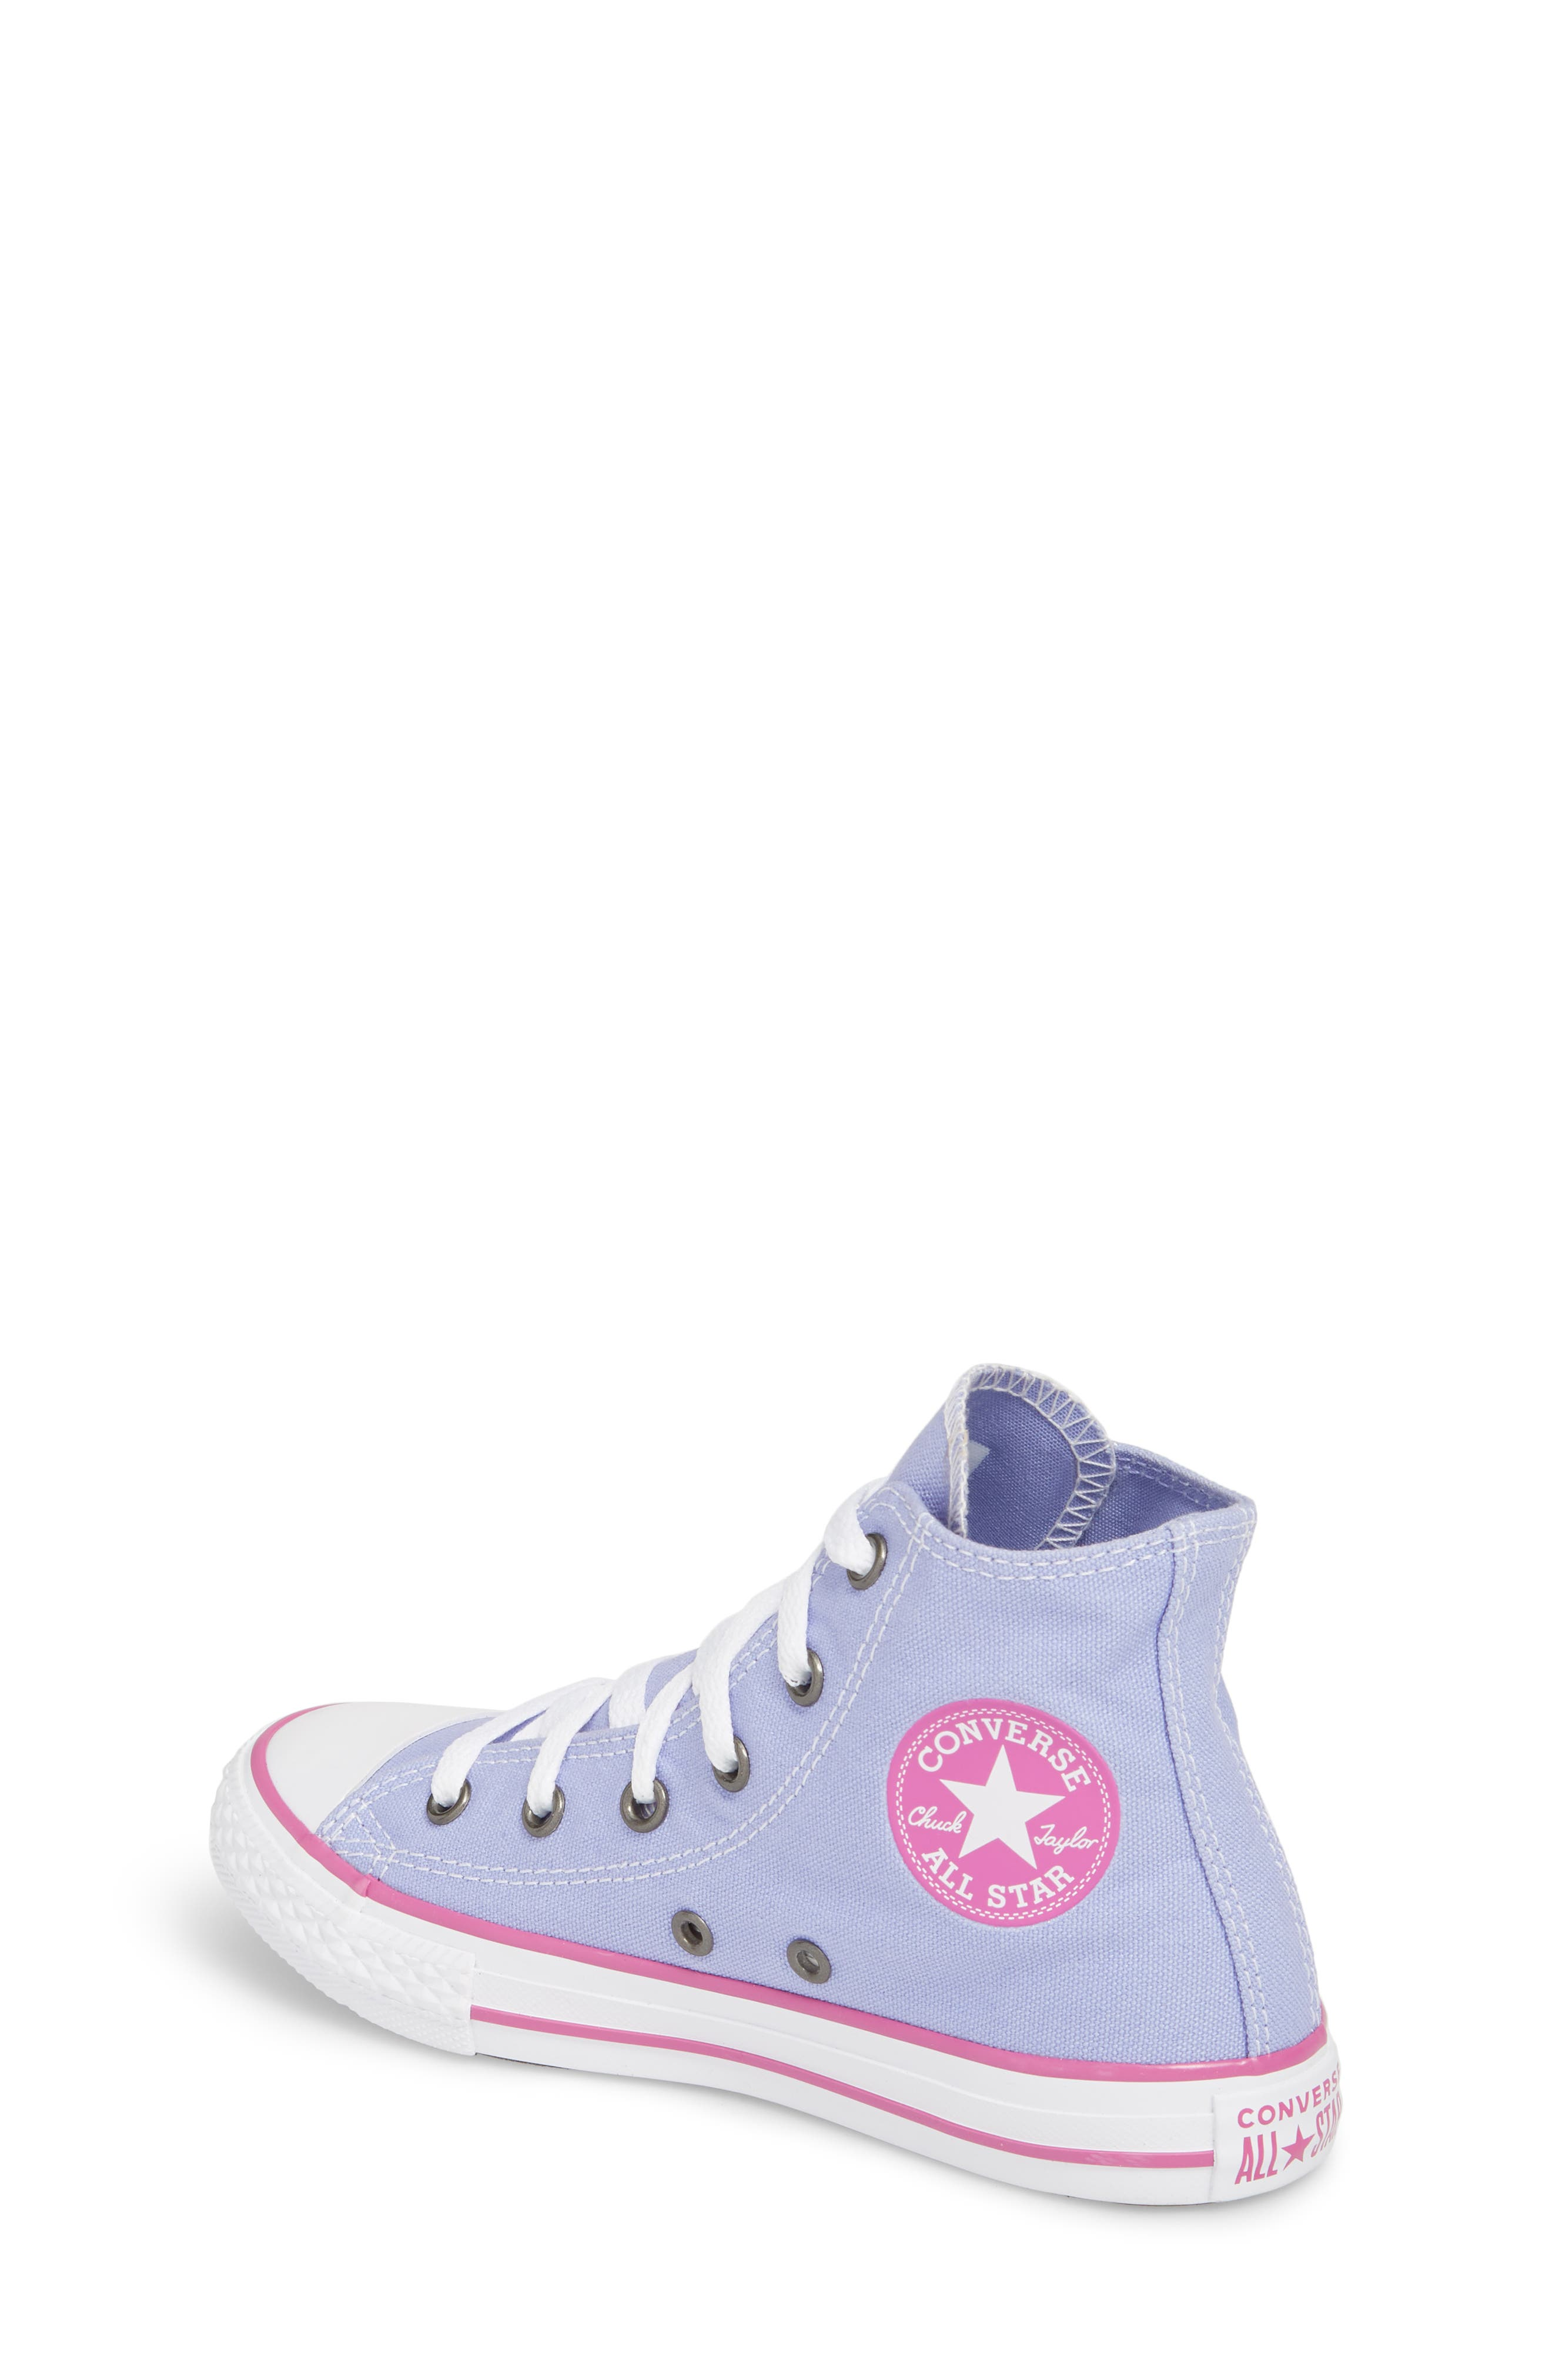 Chuck Taylor<sup>®</sup> All Star<sup>®</sup> High Top Sneaker,                             Alternate thumbnail 2, color,                             Twilight Purple